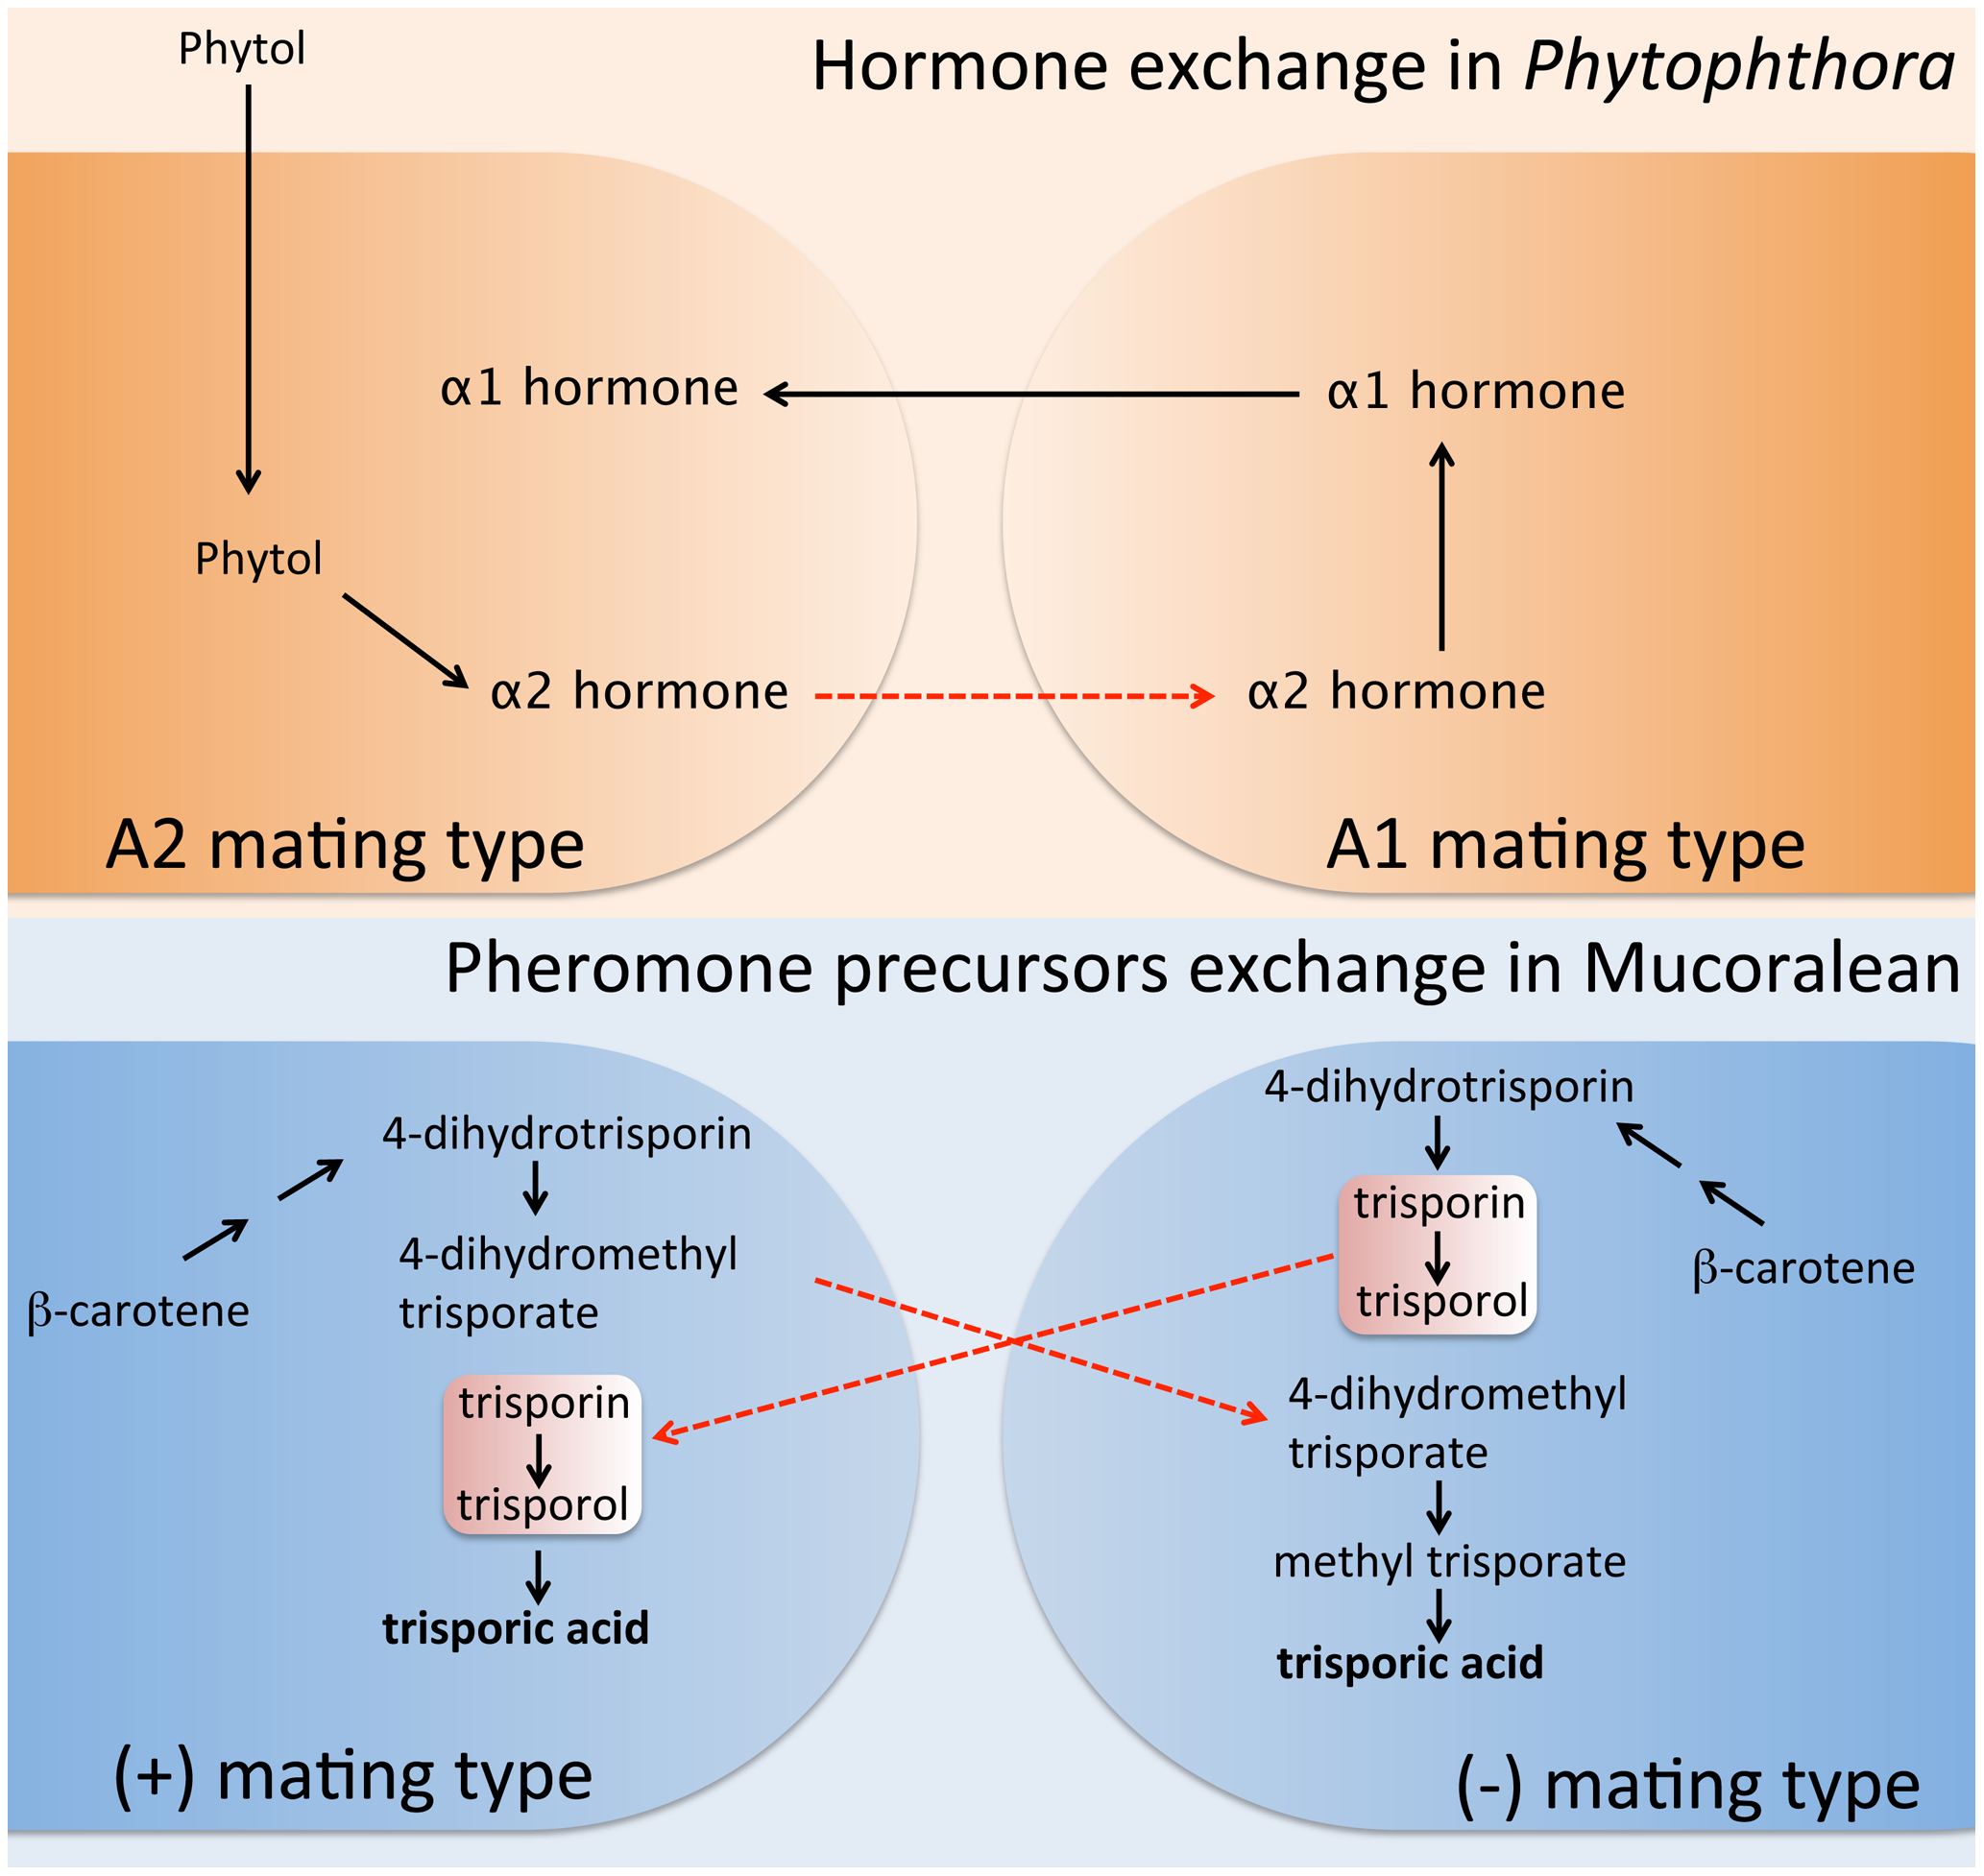 Sexual pheromone synthesis in <i>Phytophthora</i> and Mucoralean fungi.